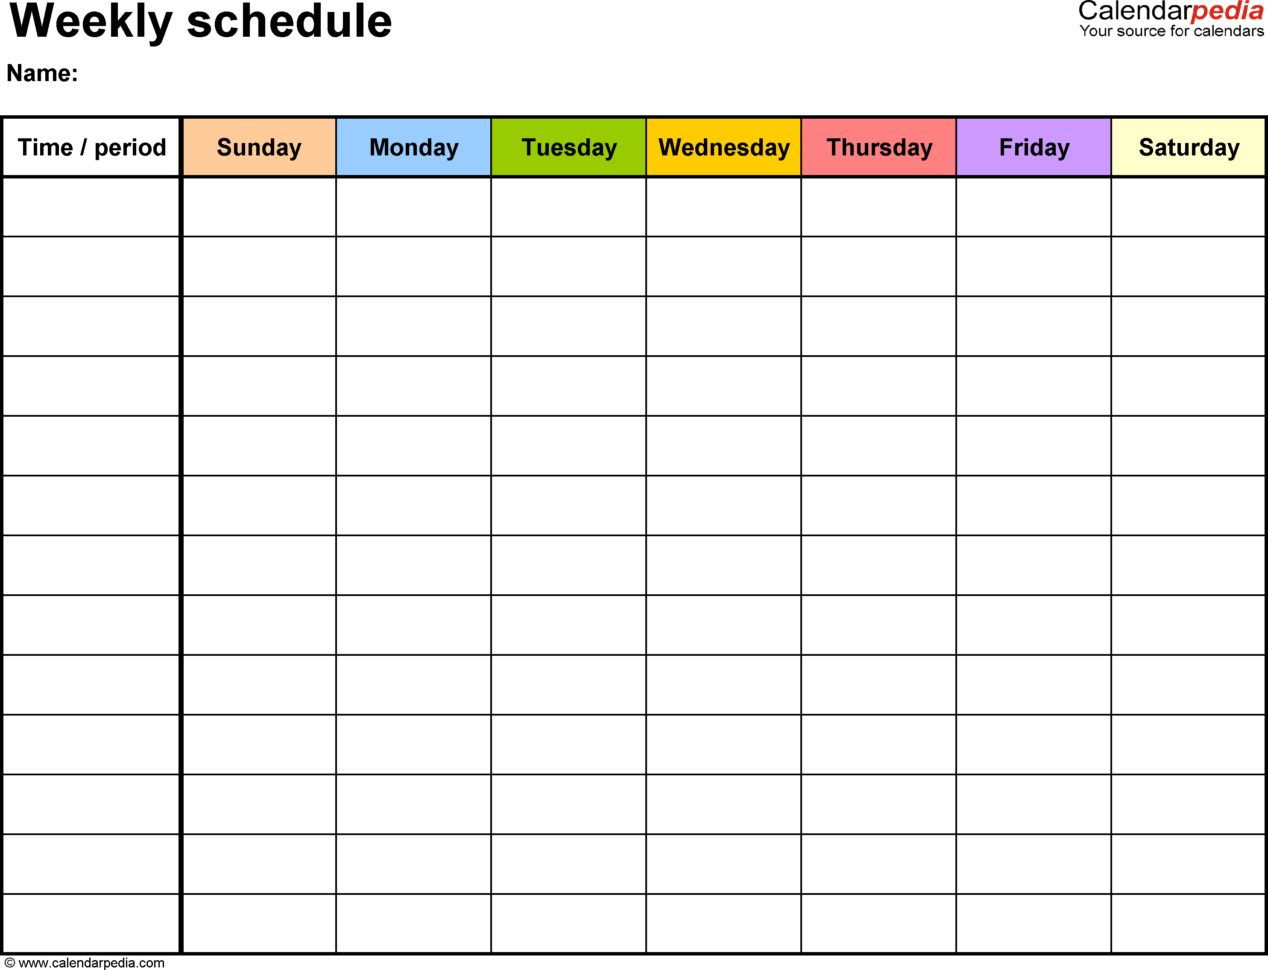 Weekly Schedule Spreadsheet Inside Free Weekly Schedule Templates For Excel  18 Templates